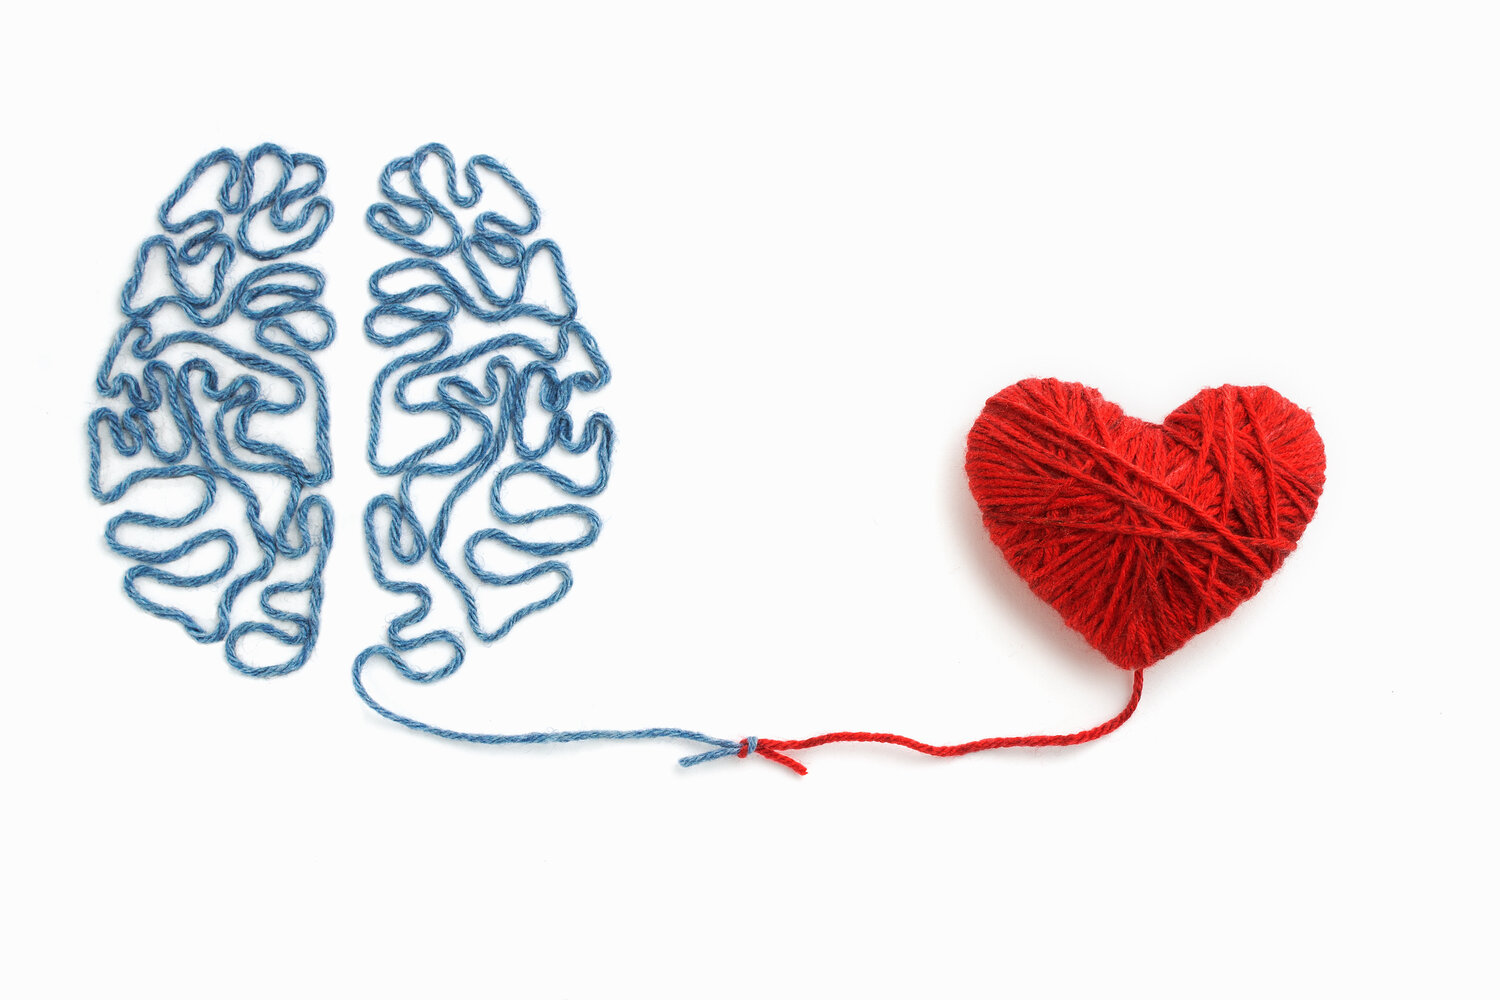 Red heart and blue brain drawn with yarn connected by a knot on a white background.